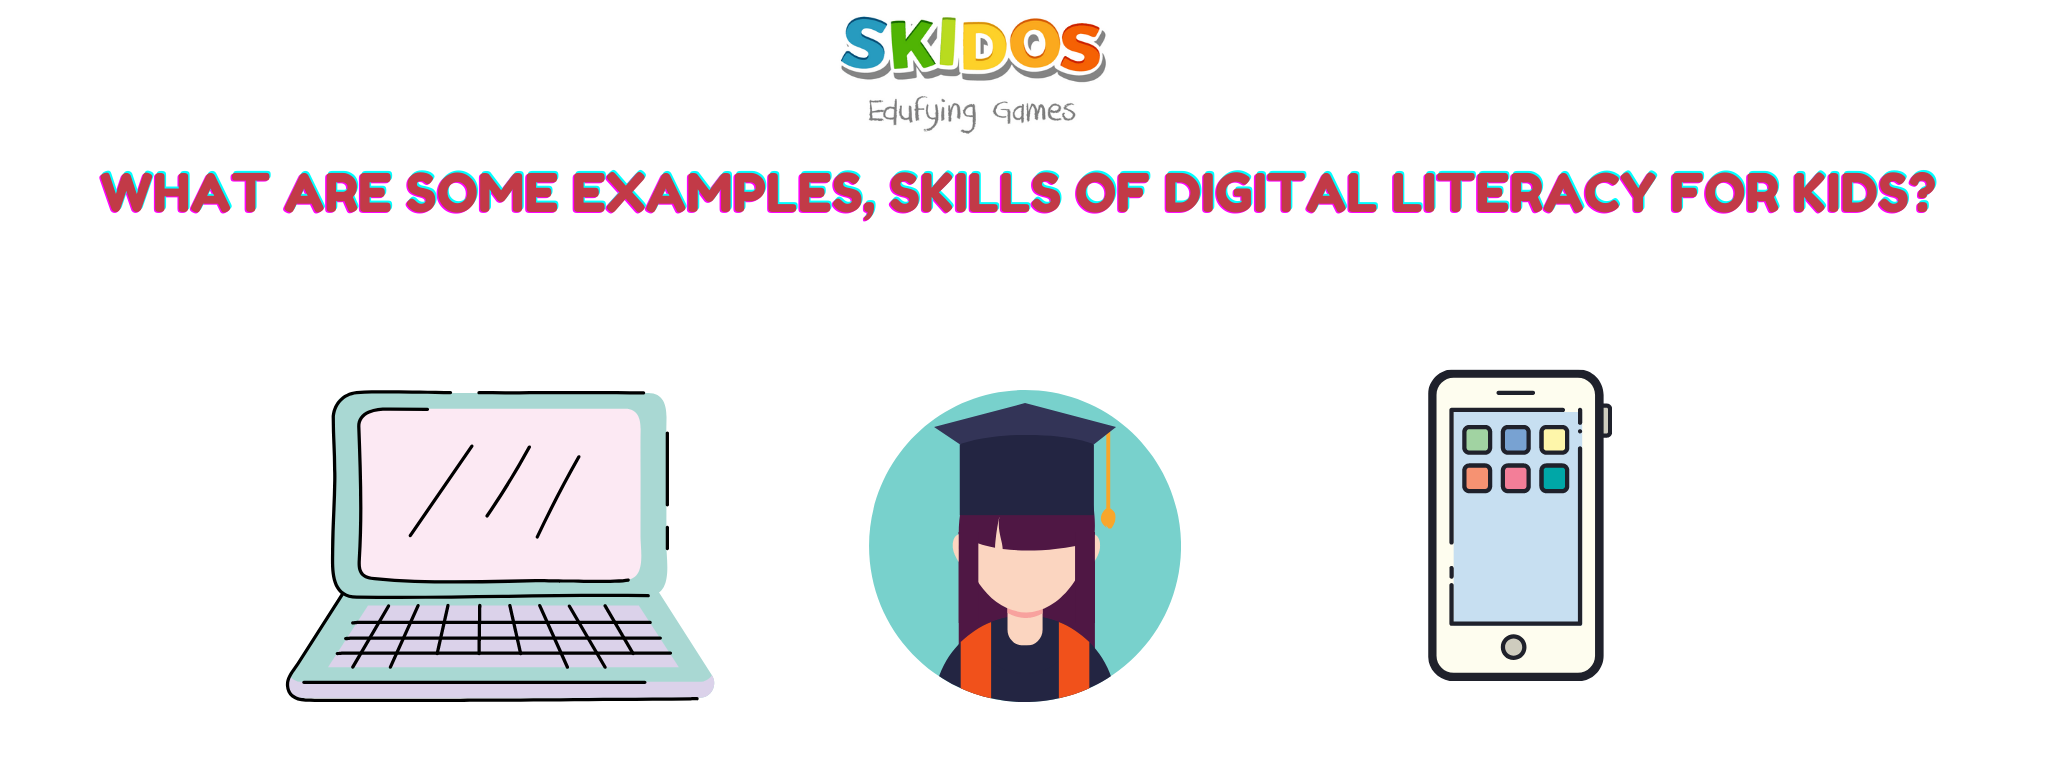 What are some examples, skills of digital literacy for kids